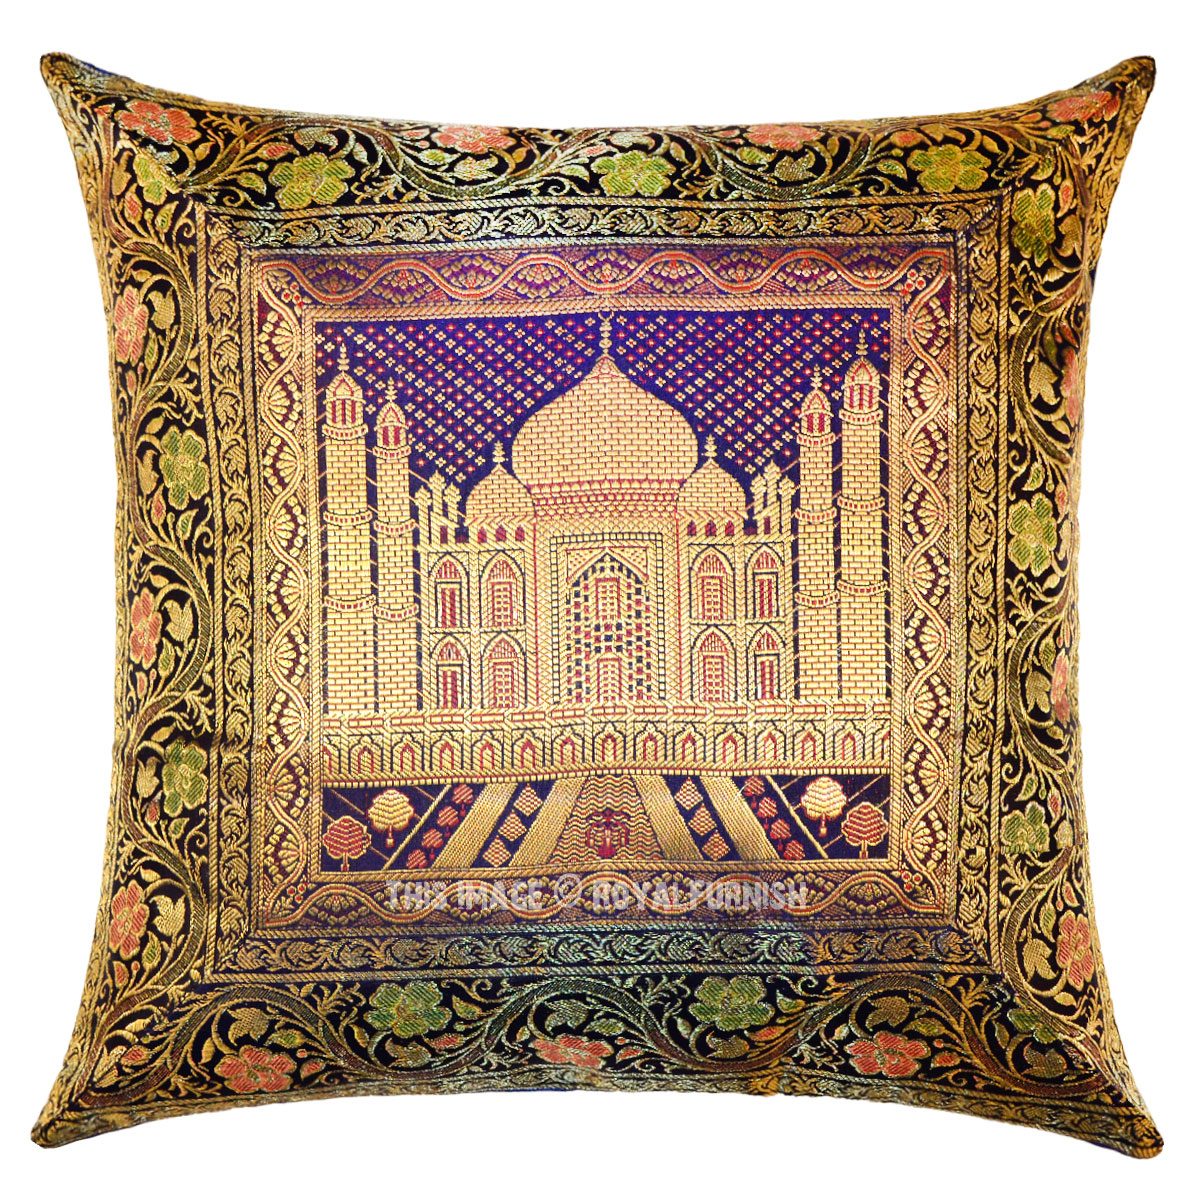 16x16 Decorative Pillow Covers : Blue Taj Mahal Featuring Decorative Square Silk Pillow Sham Cover 16X16 - RoyalFurnish.com